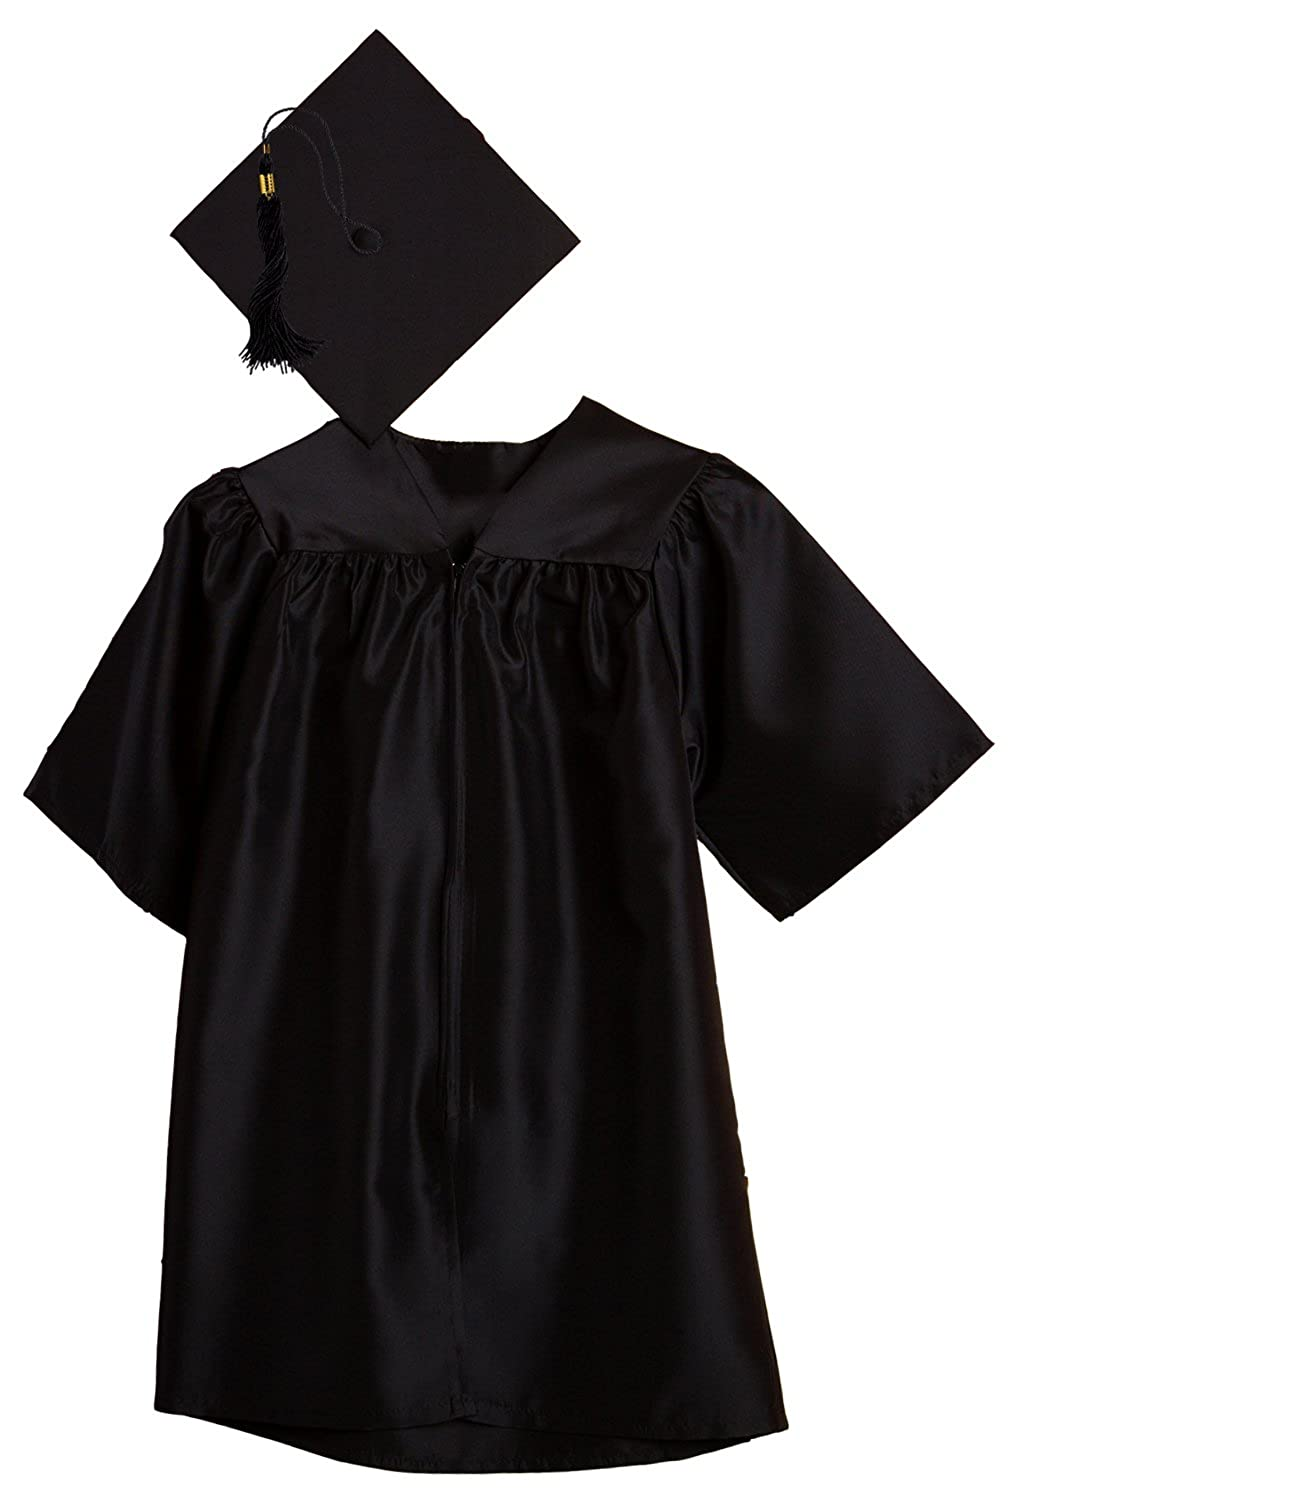 39409b39e83 Amazon.com  Jostens Child Size Graduation Cap And Gown Package  Clothing